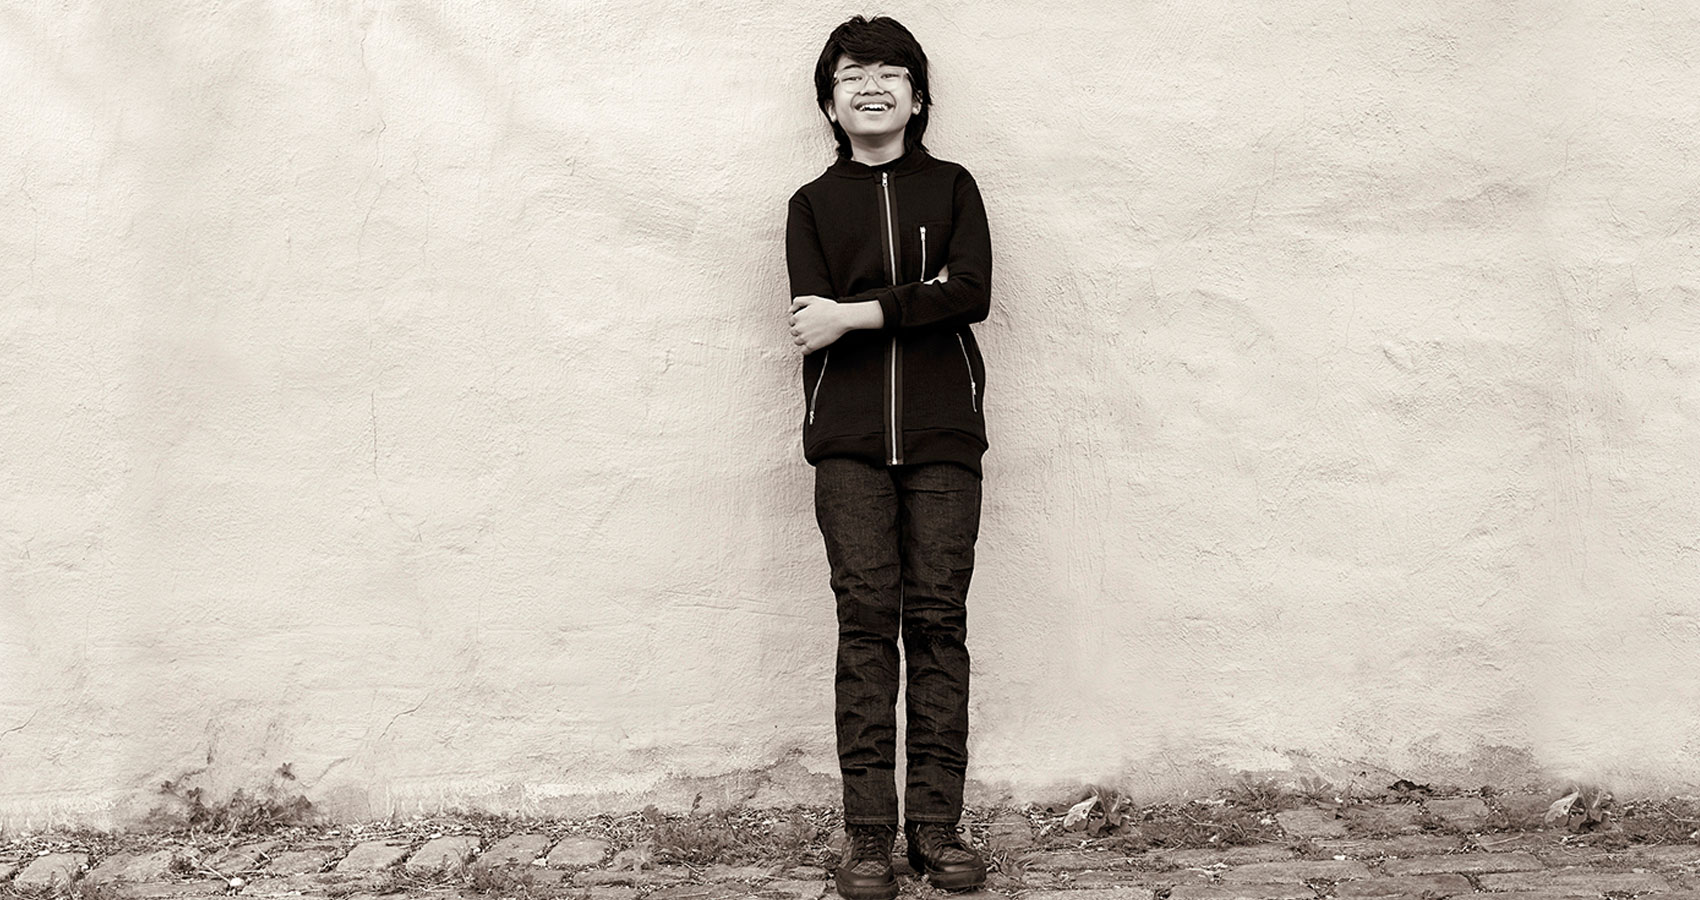 JOEY ALEXANDER (More Than A Child Genius), by Norberto Franco Cisneros at Spillwords.com